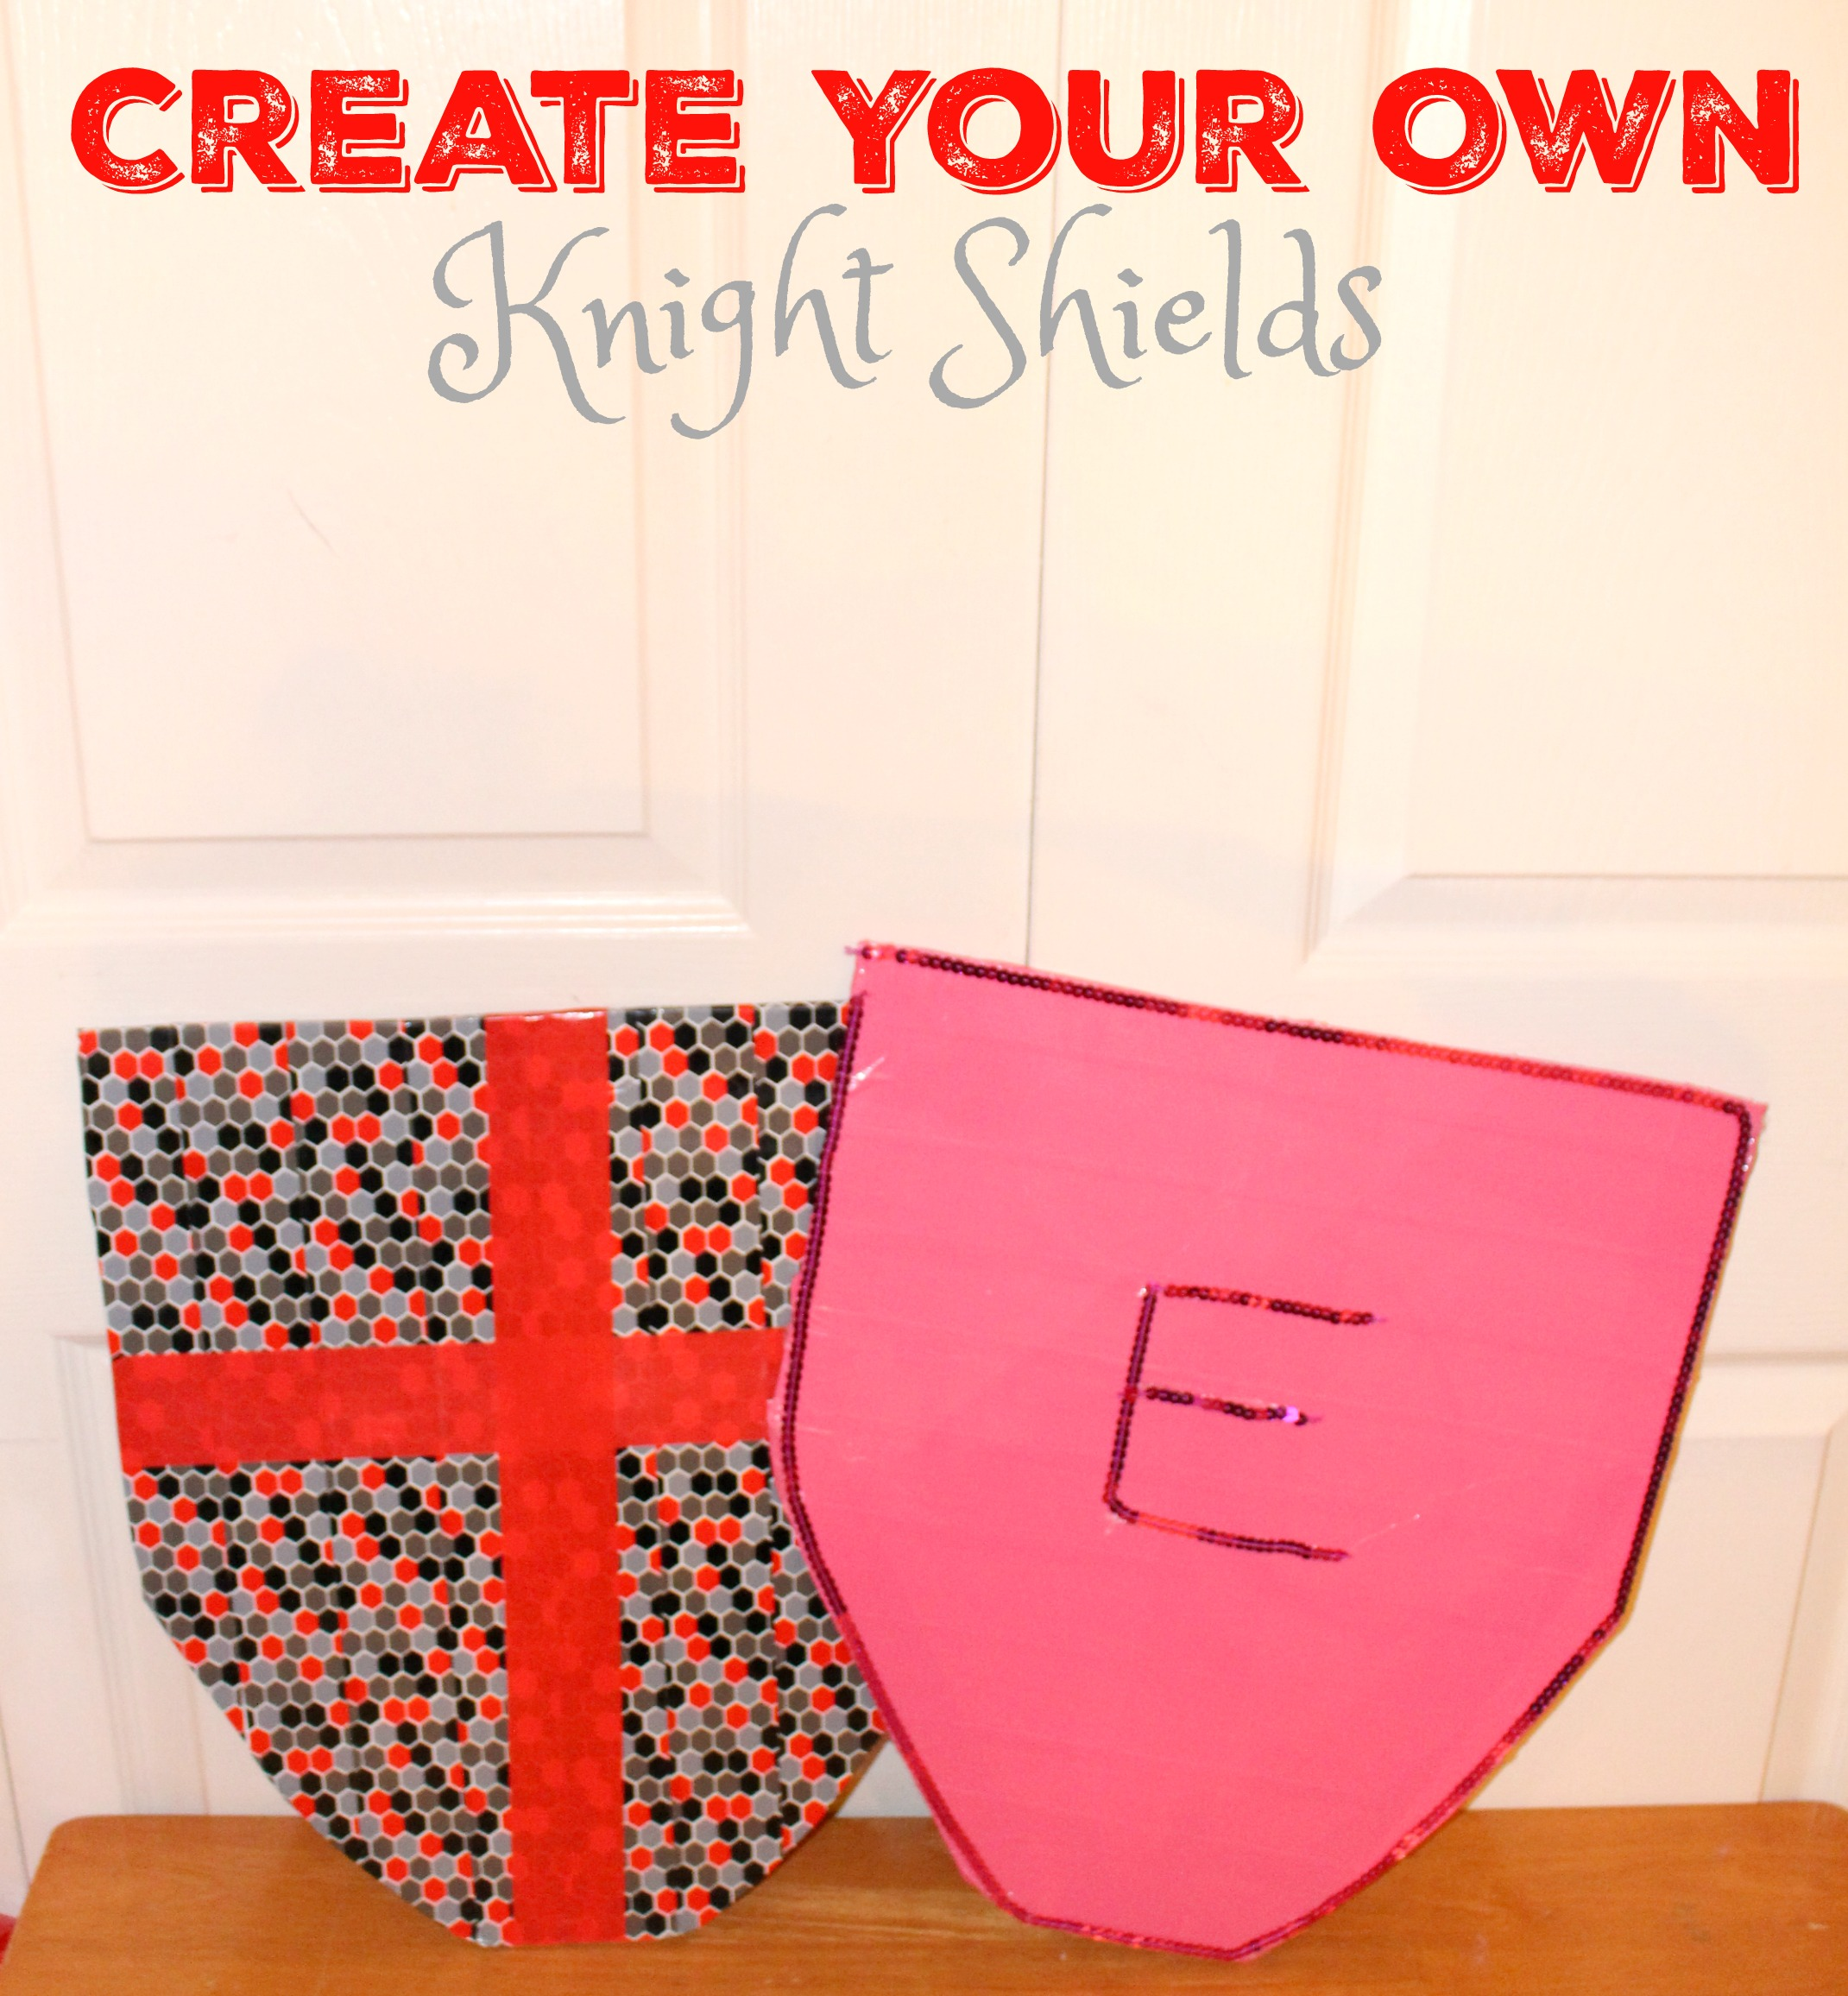 Create Your Own Knight Shields